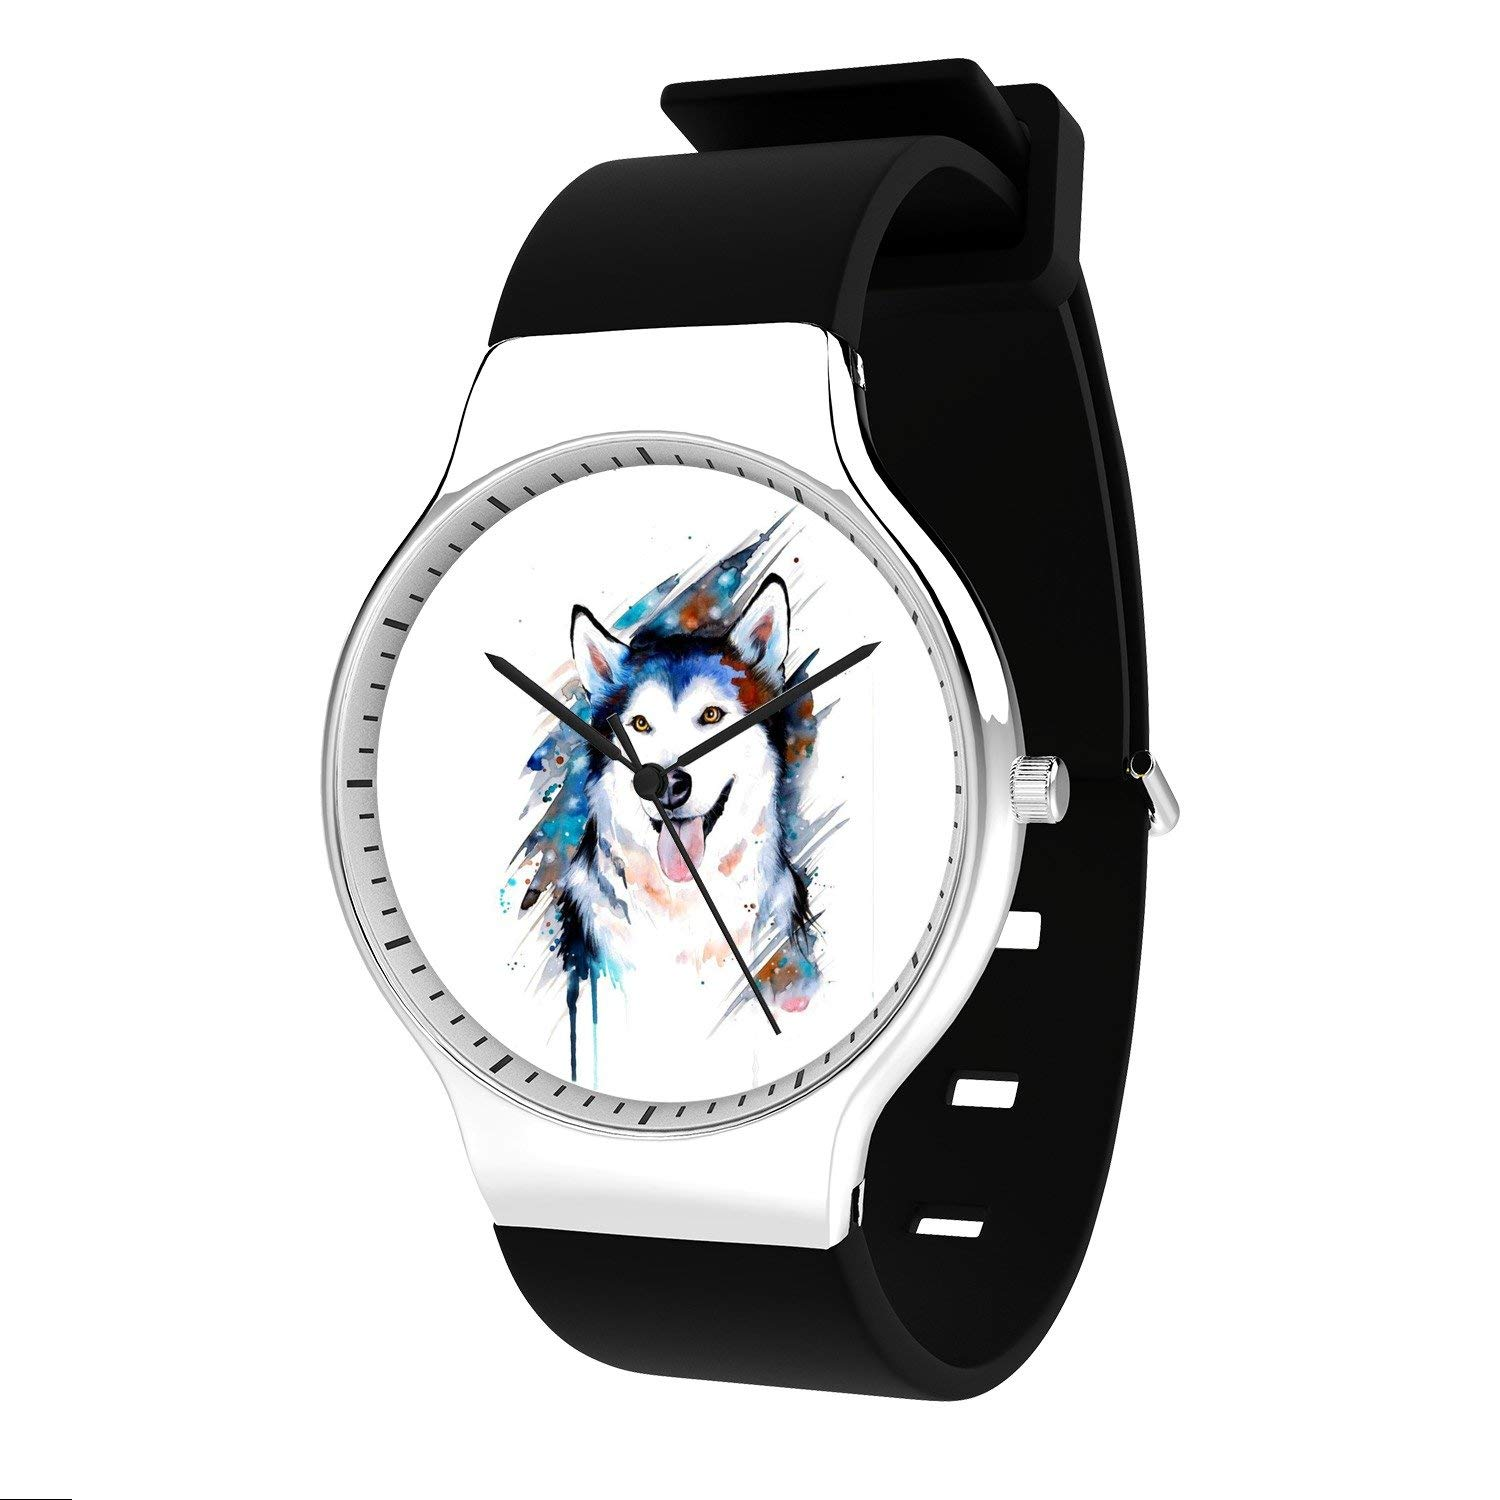 FELOOWSE Wolf Watch Men'S Quartz Watches, Minimalist Slim Japanese Quartz Youth Silicone Watches, Fashion Practical Waterproof Boys Watch Customized Watches